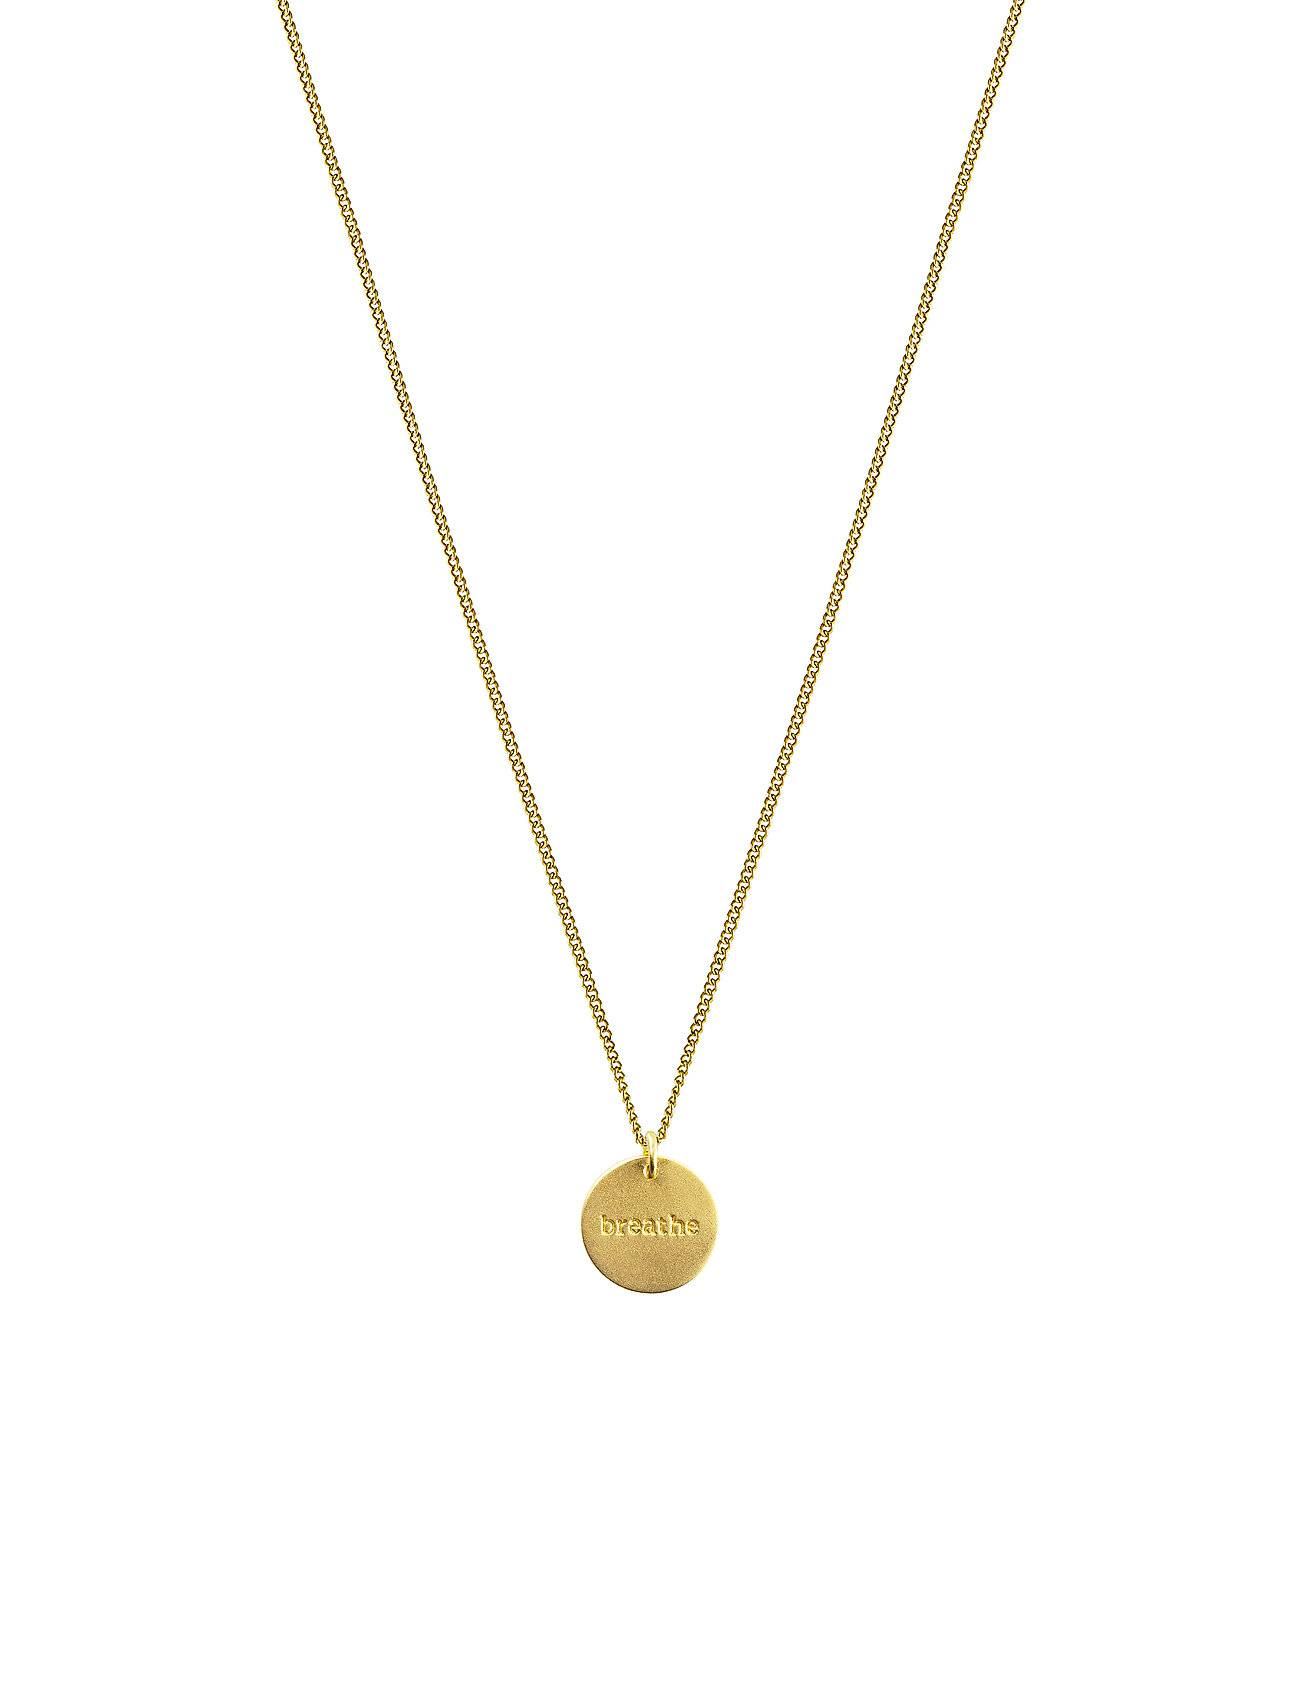 Syster P Minimalistica Breathe Necklace Gold Accessories Jewellery Necklaces Dainty Necklaces Kulta Syster P